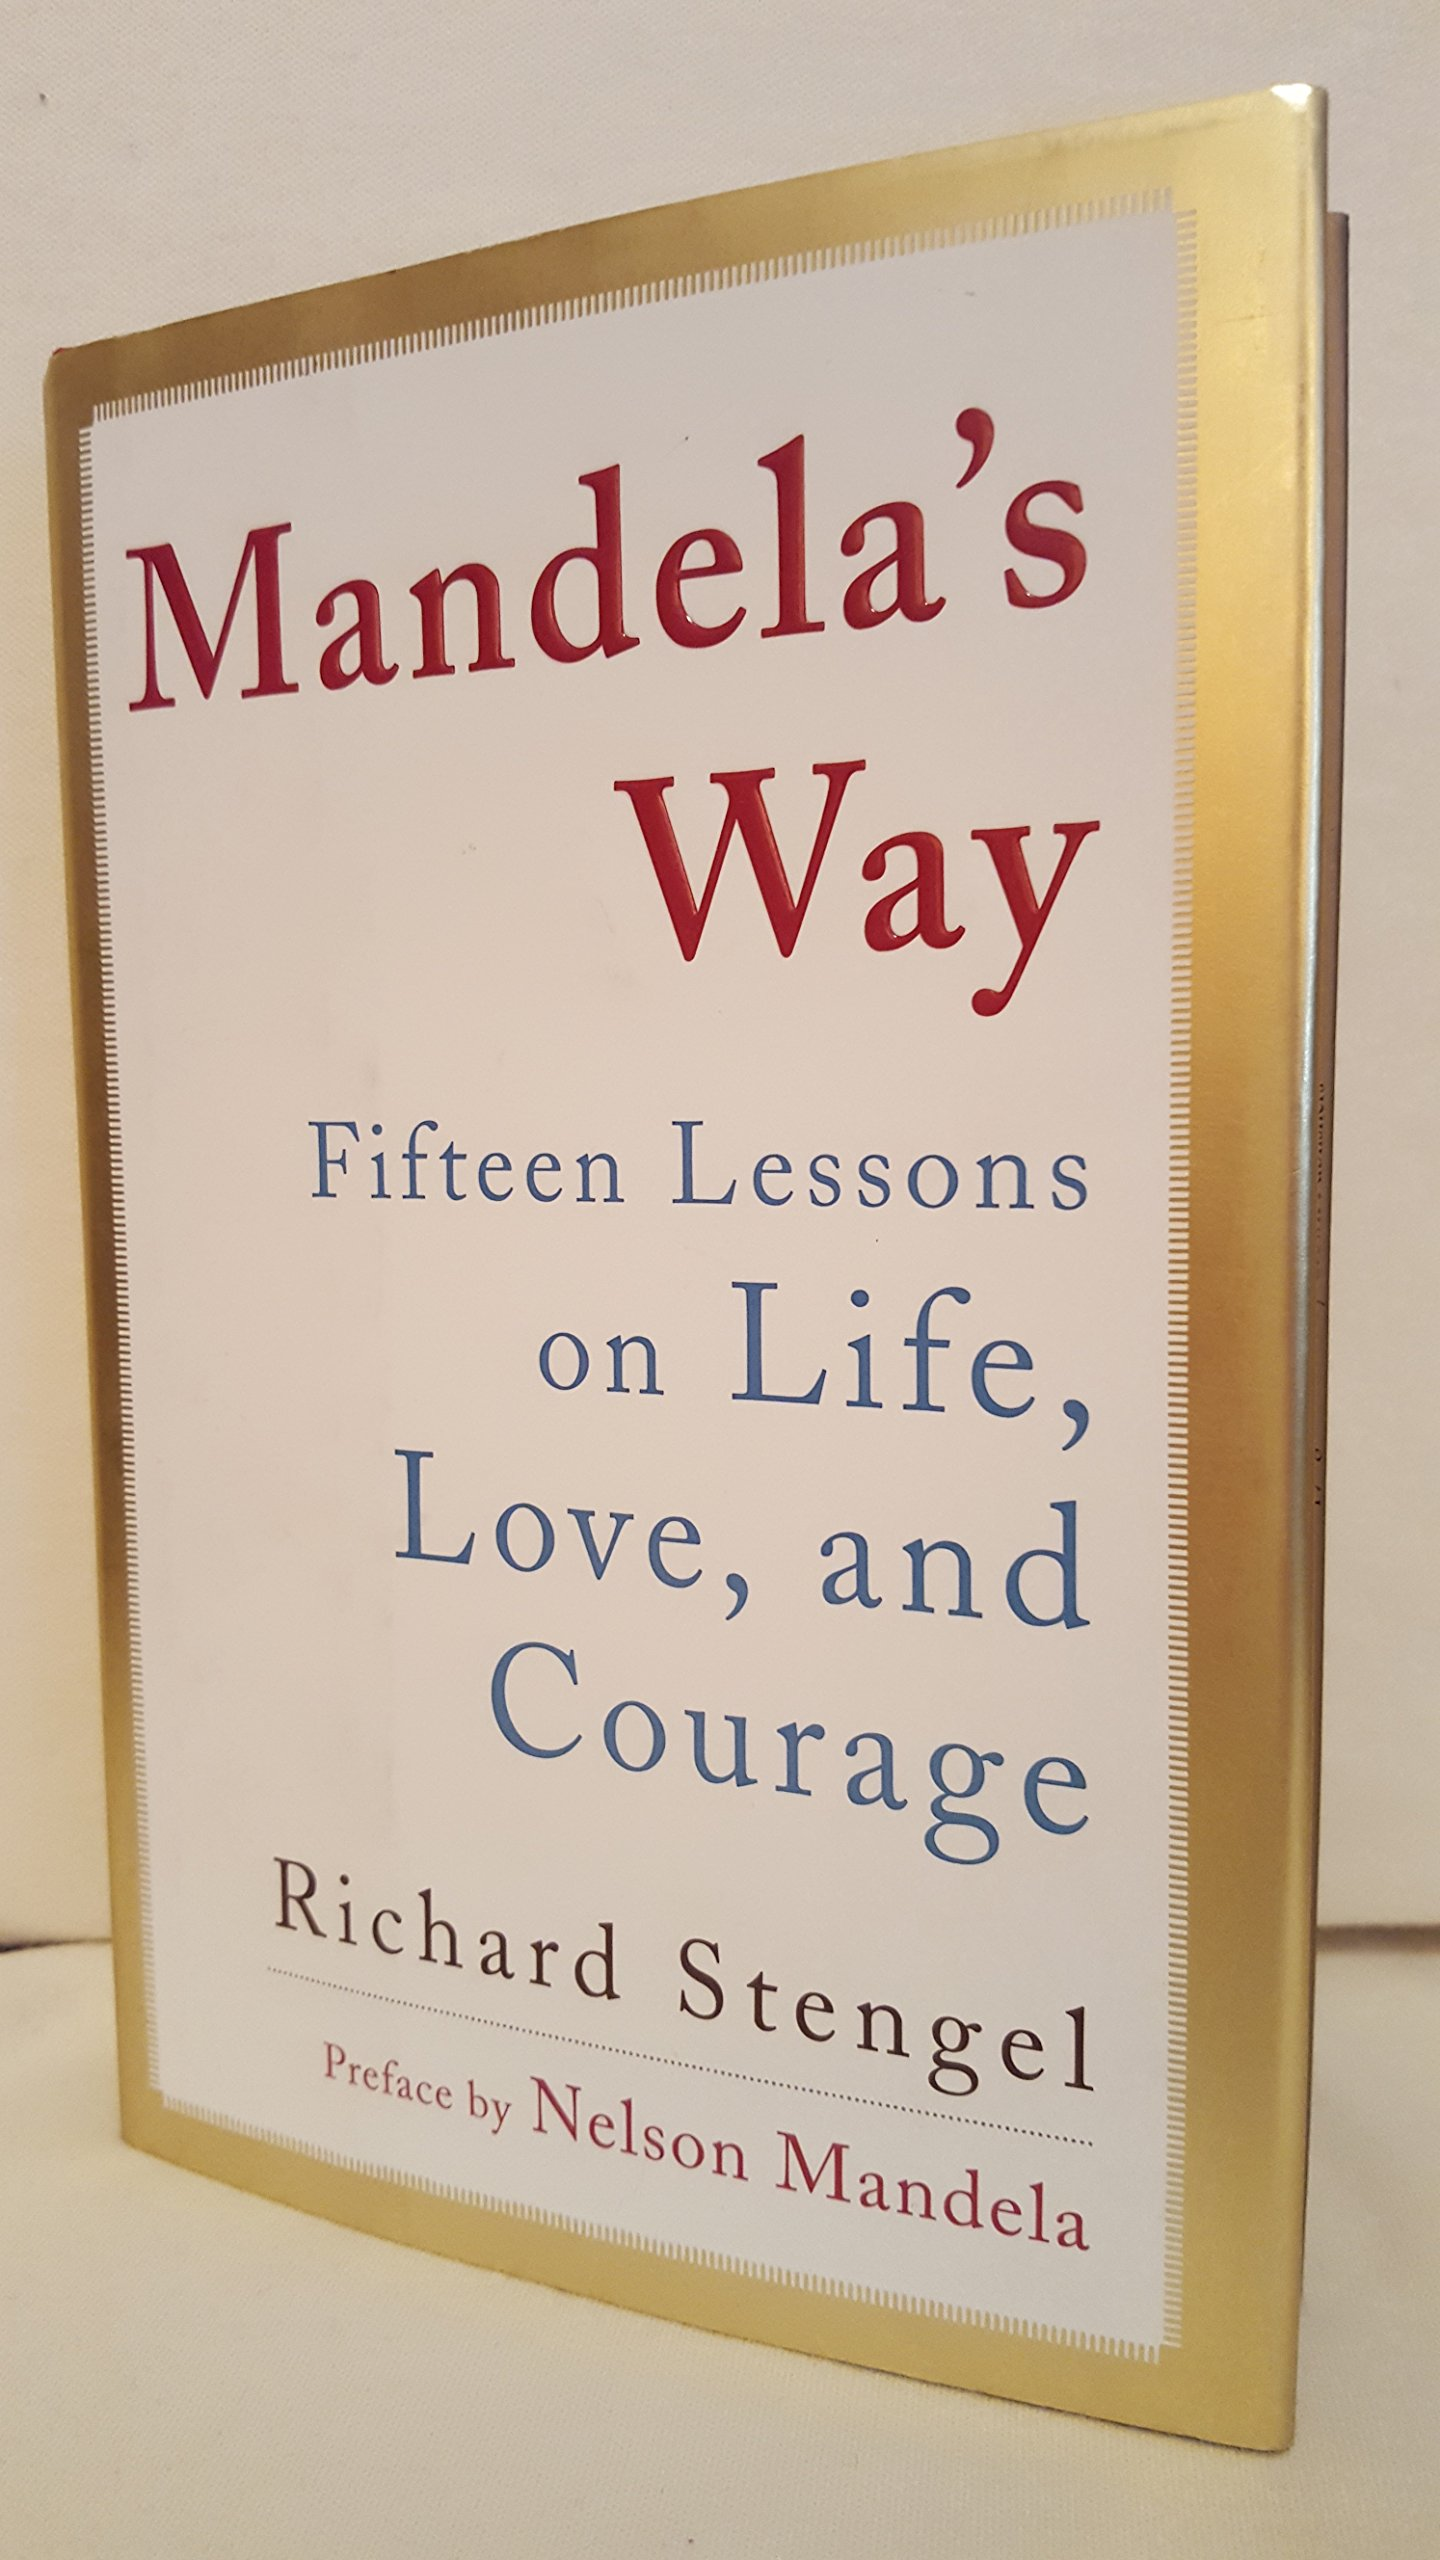 Read Online Mandela's Way Fifteen Lessons on Life, Love, and Courage PDF